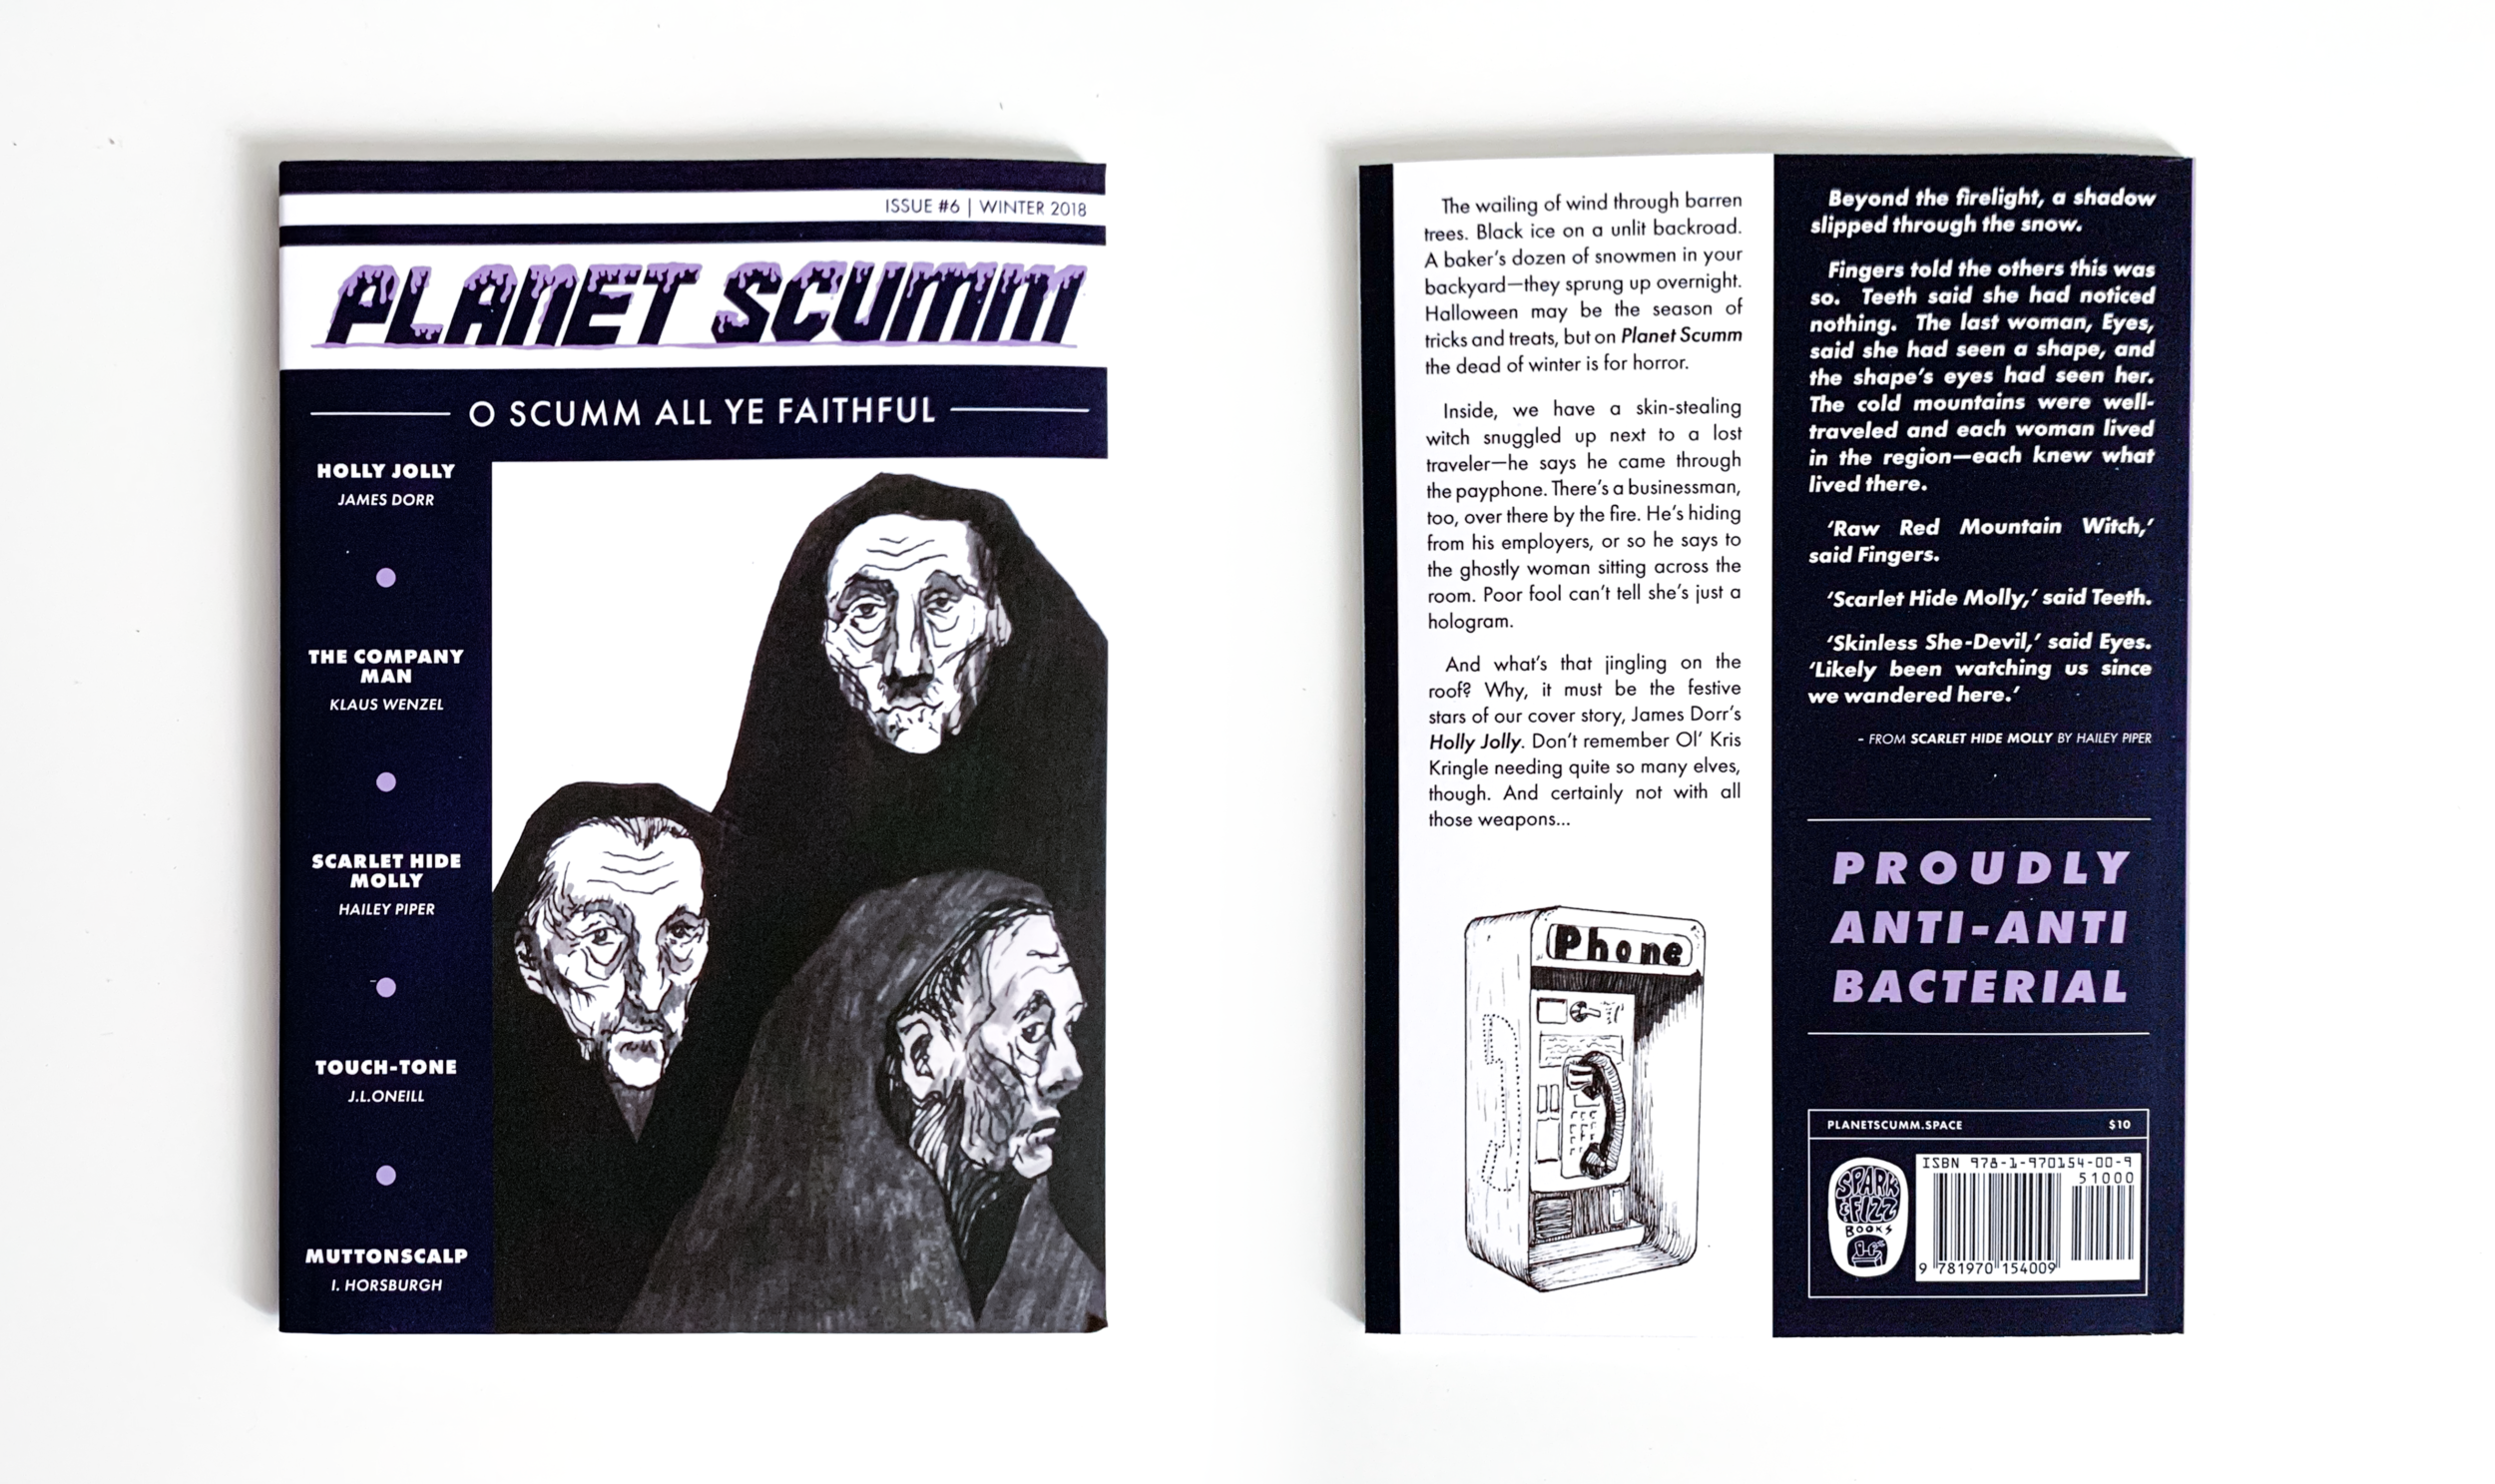 Planet-Scumm-Science-Fiction-Magazine-Issue-6-Cover-Spread.png